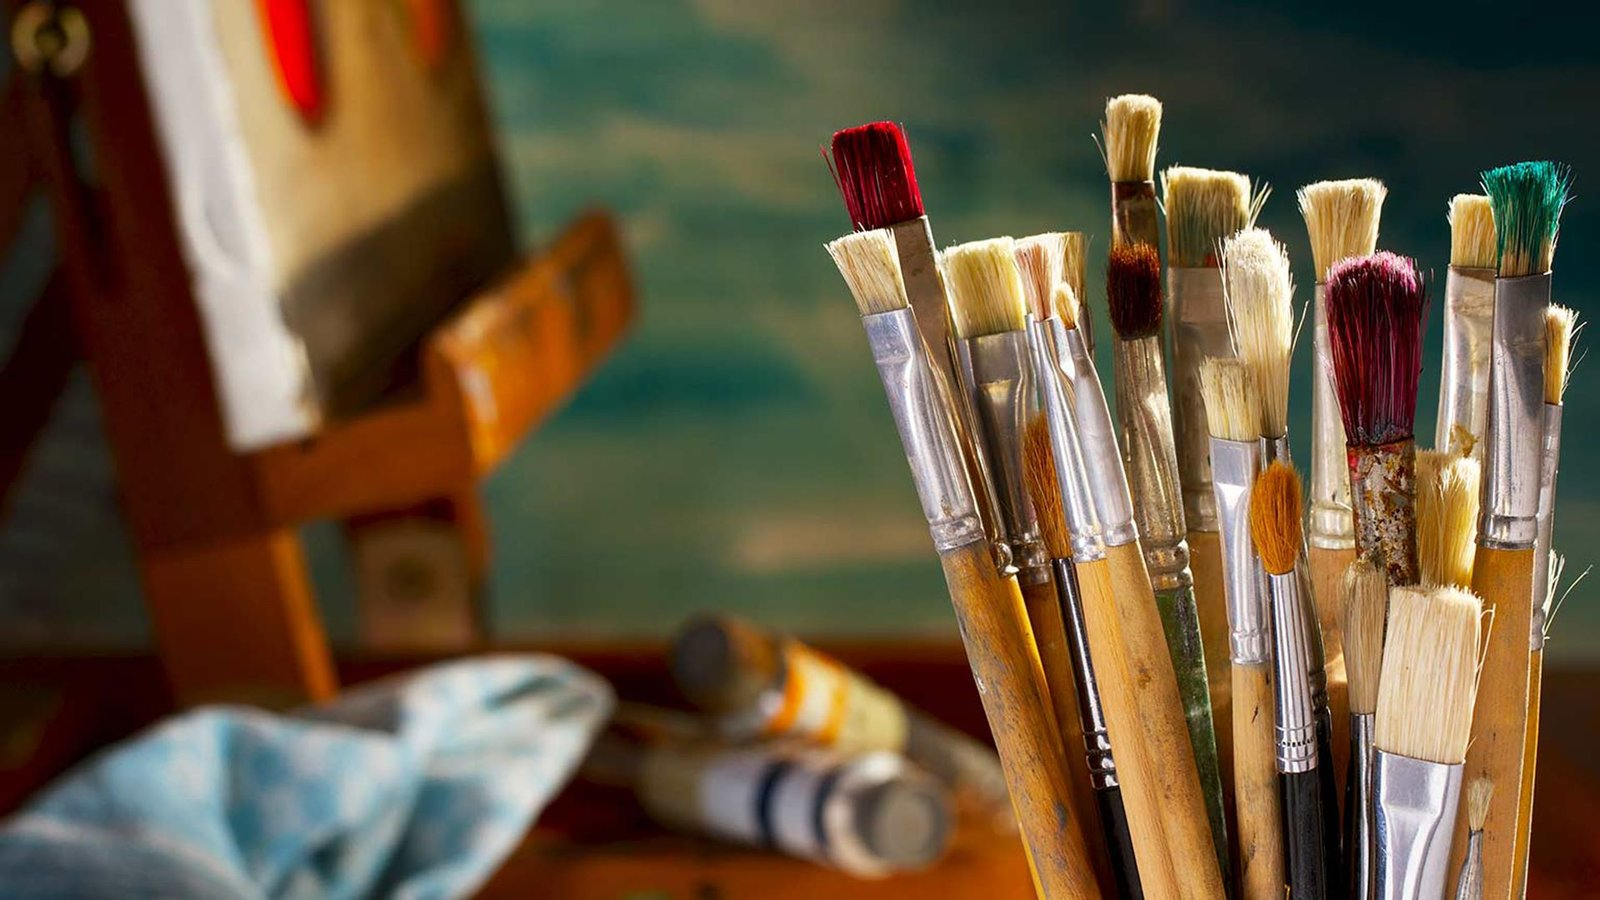 The Painter's Toolkit